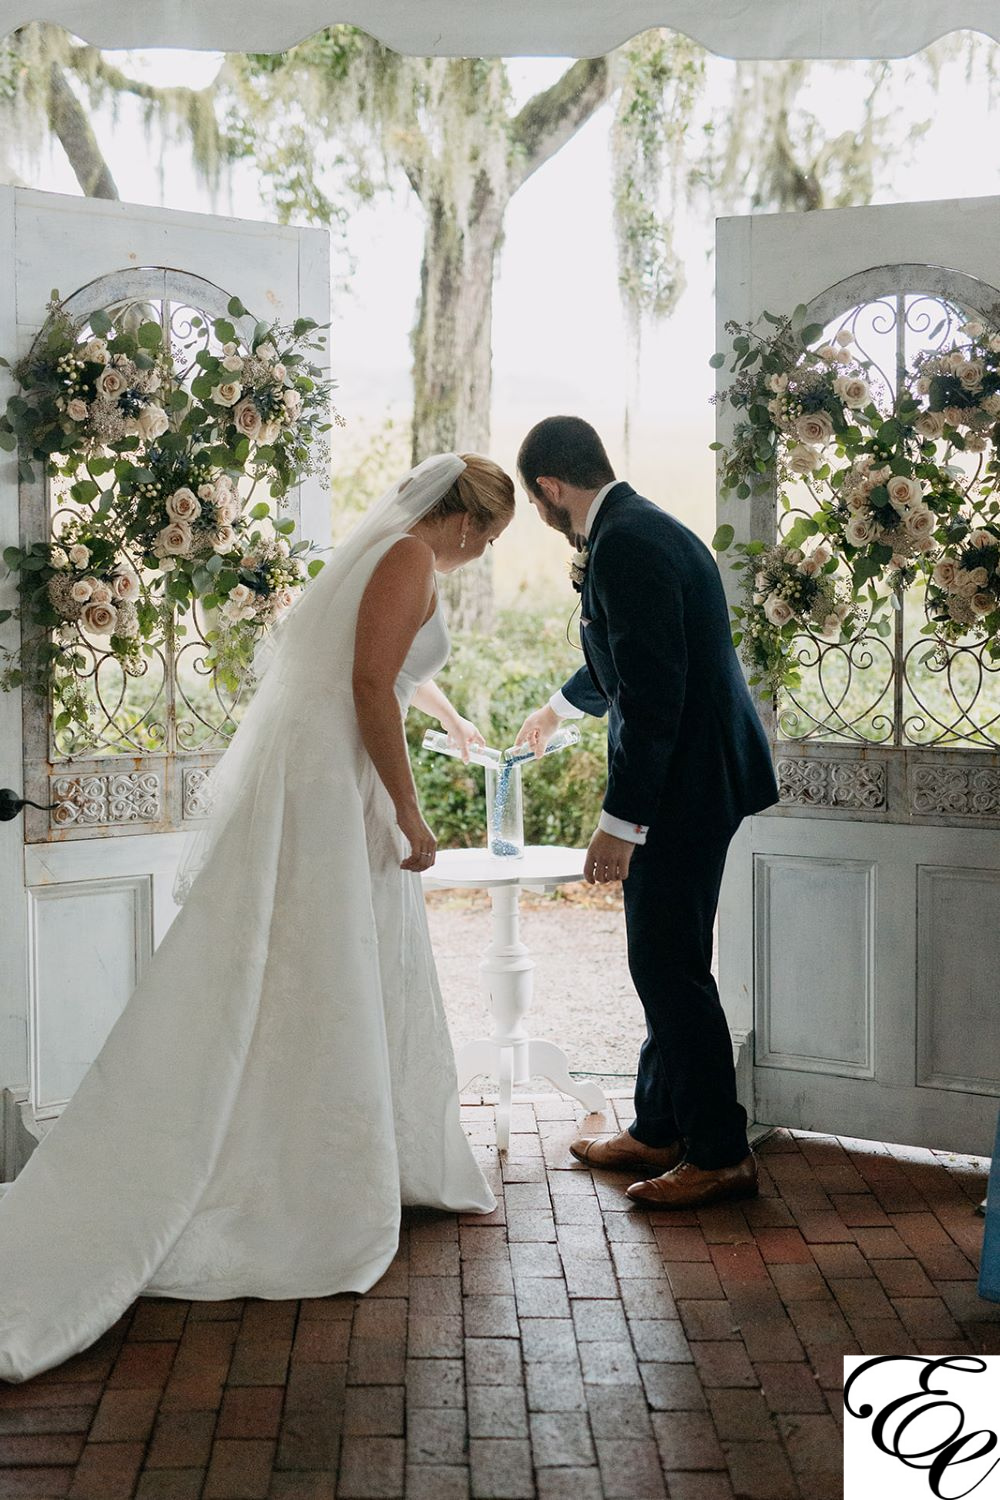 Engaging Events Charleston Wedding Planner In 2020 Luxury Wedding Planner Charleston Wedding Wedding Planner